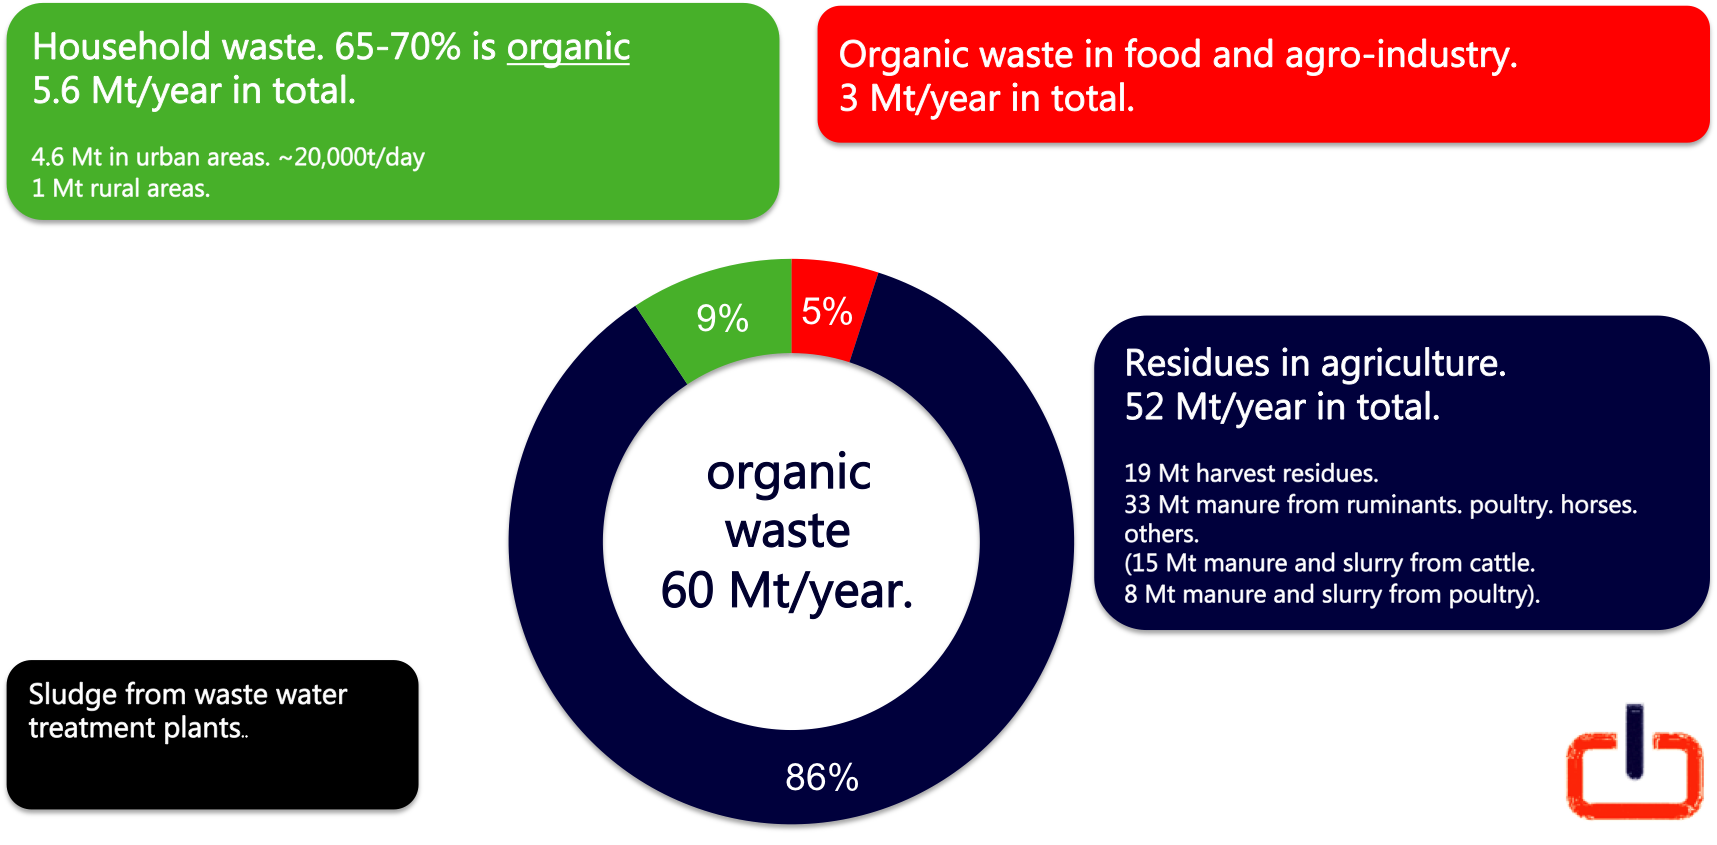 Organic waste in Morocco.